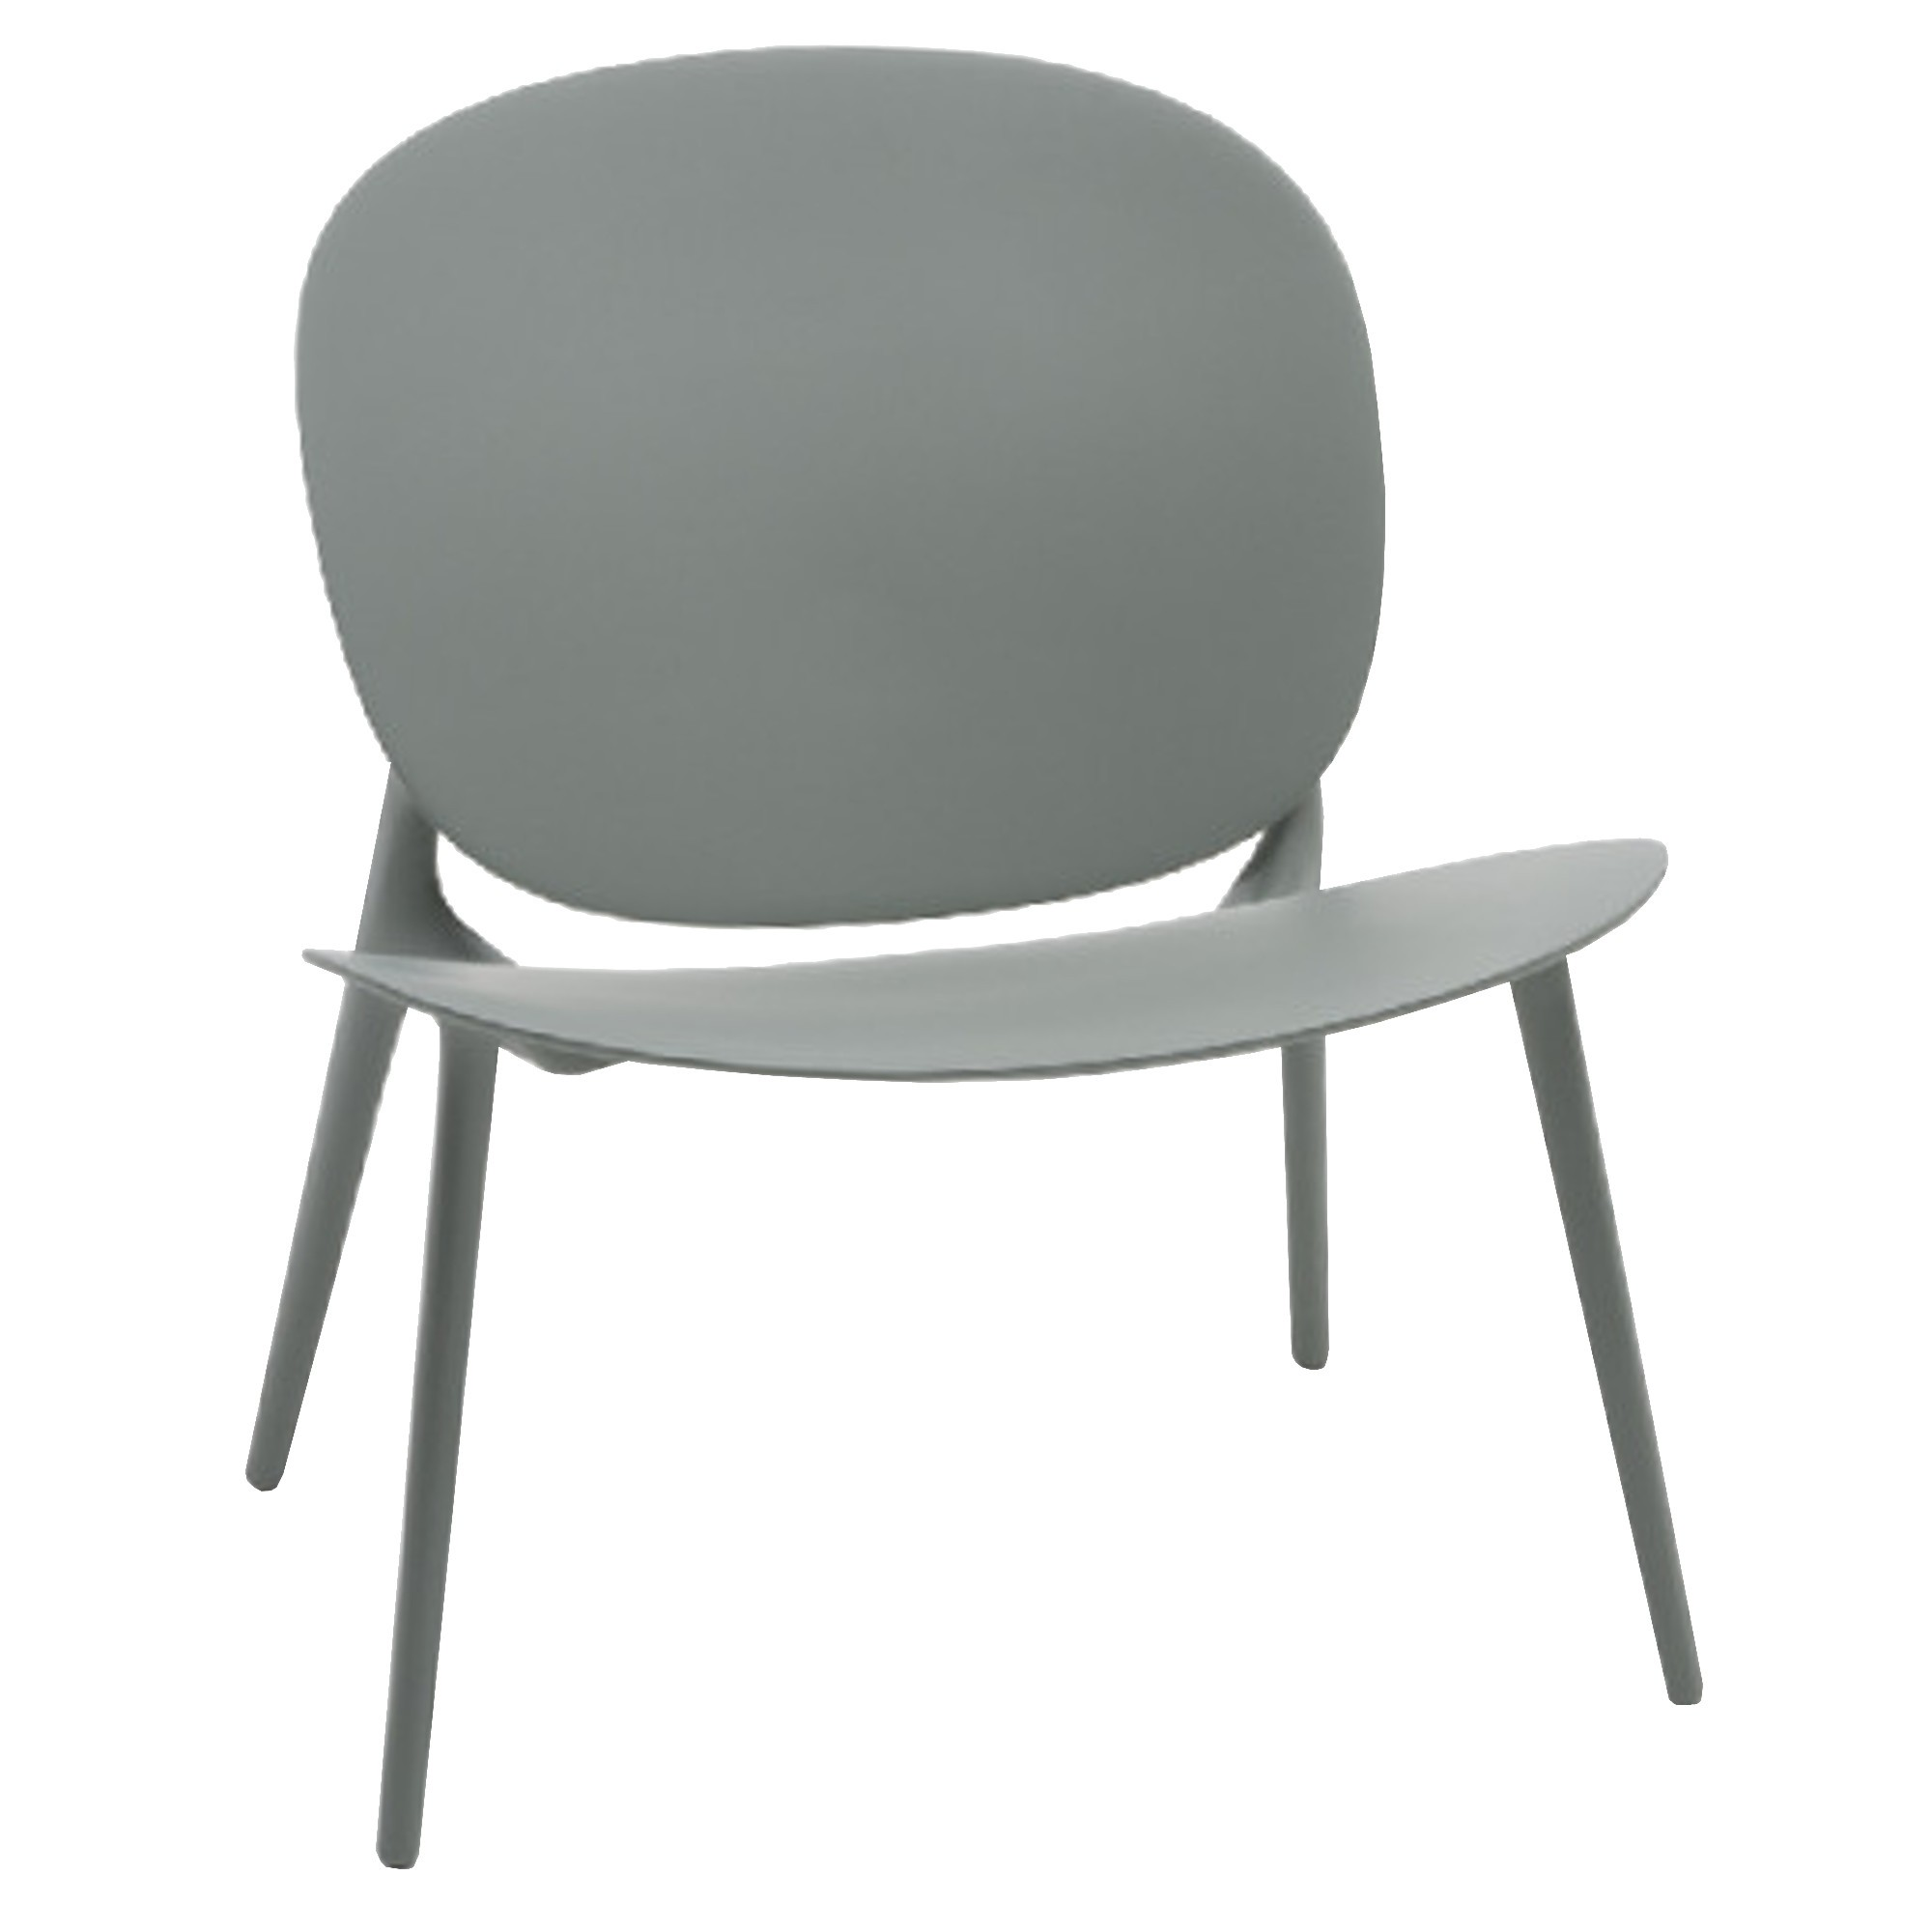 BE BOP , by KARTELL